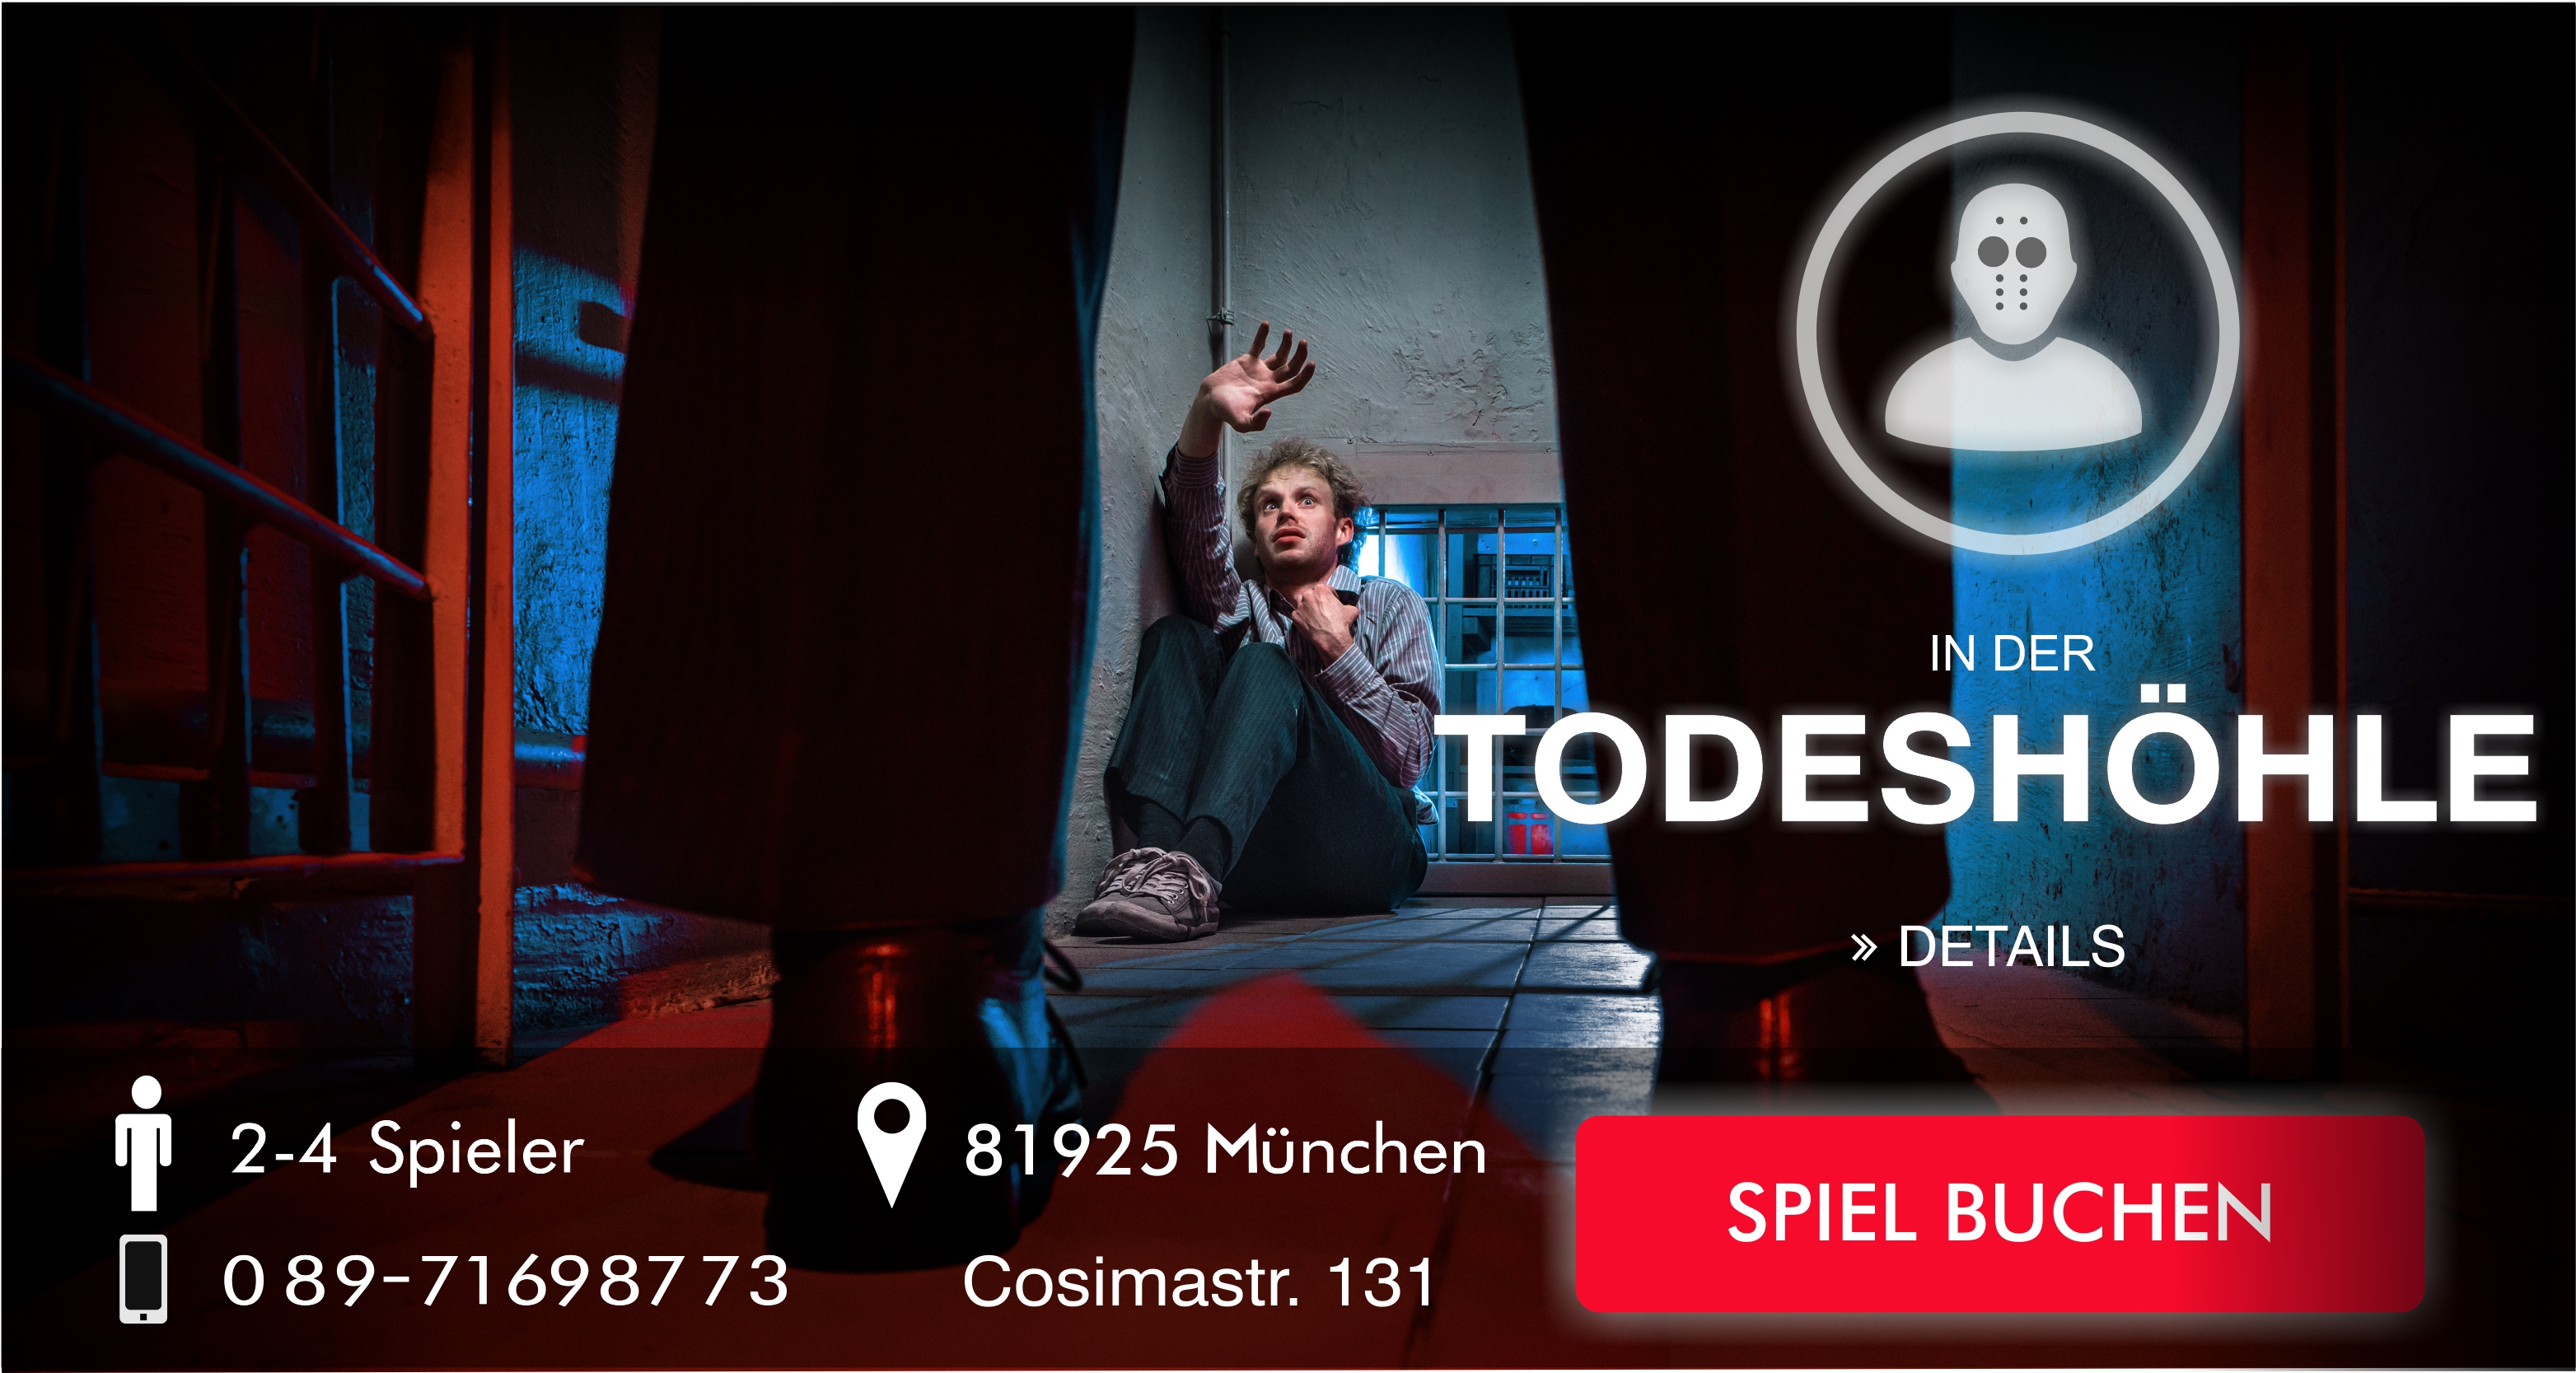 Escape Game München in der Todeshöle